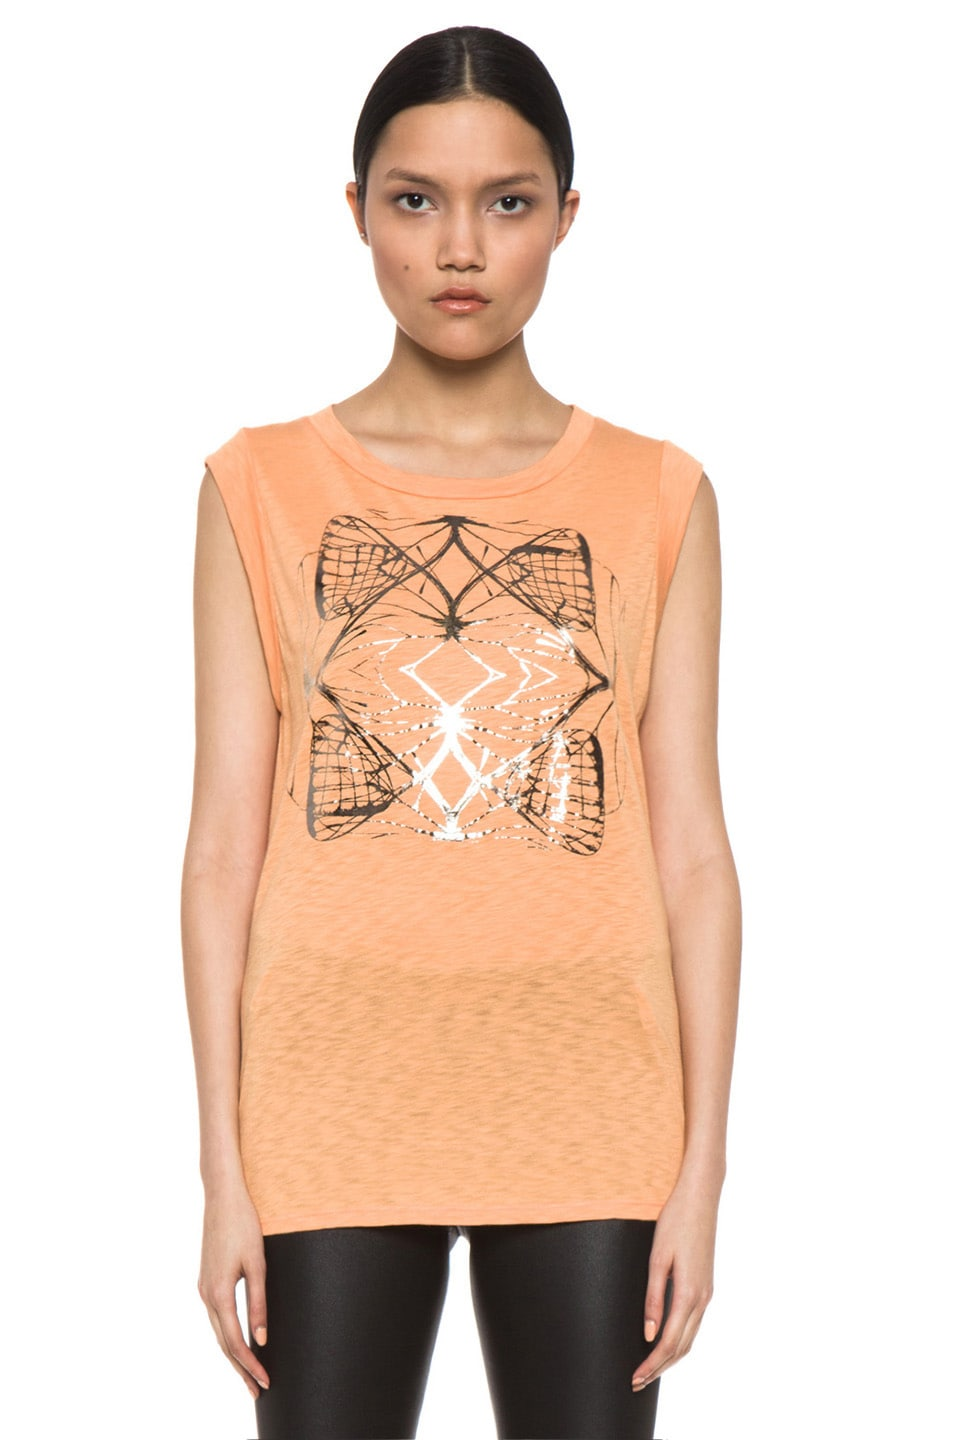 Image 1 of Kelly Wearstler Metallic Cyclone Top in Tangerine & Gunmetal Foil